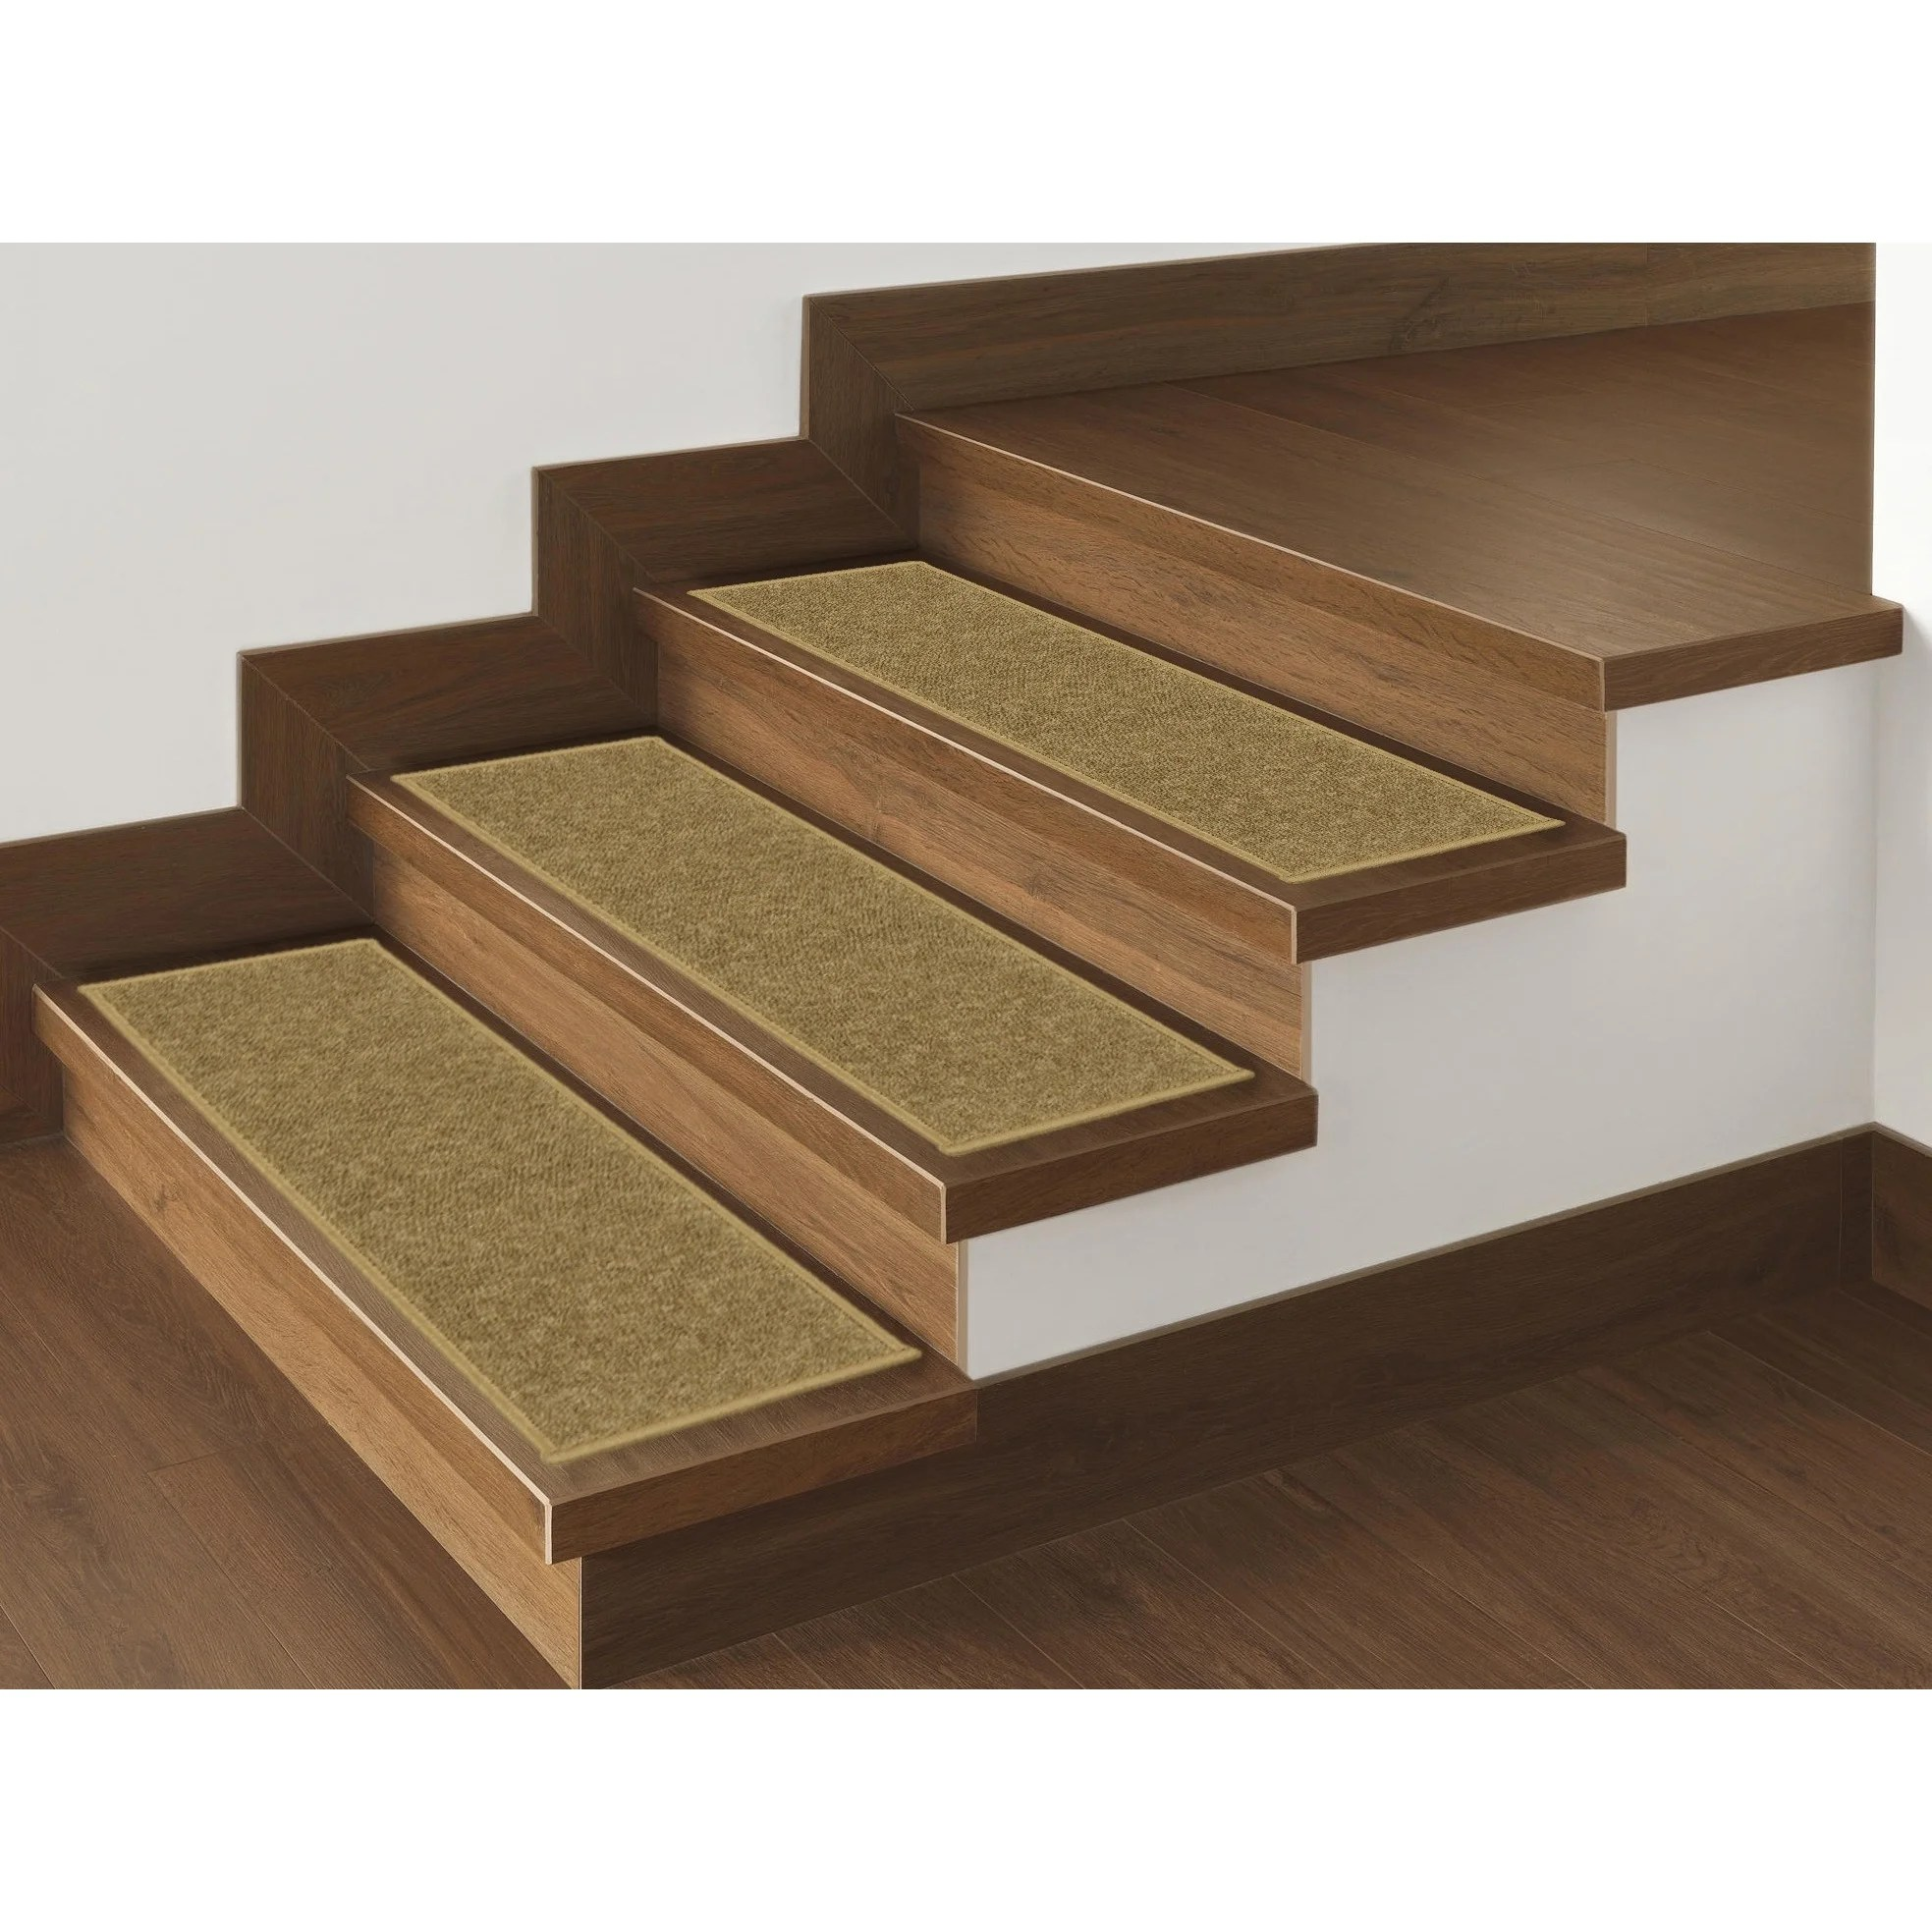 Shop Ottomanson Skid Resistant Non Slip Carpet Stair Treads Set Of 7 On Sale Overstock 9610498